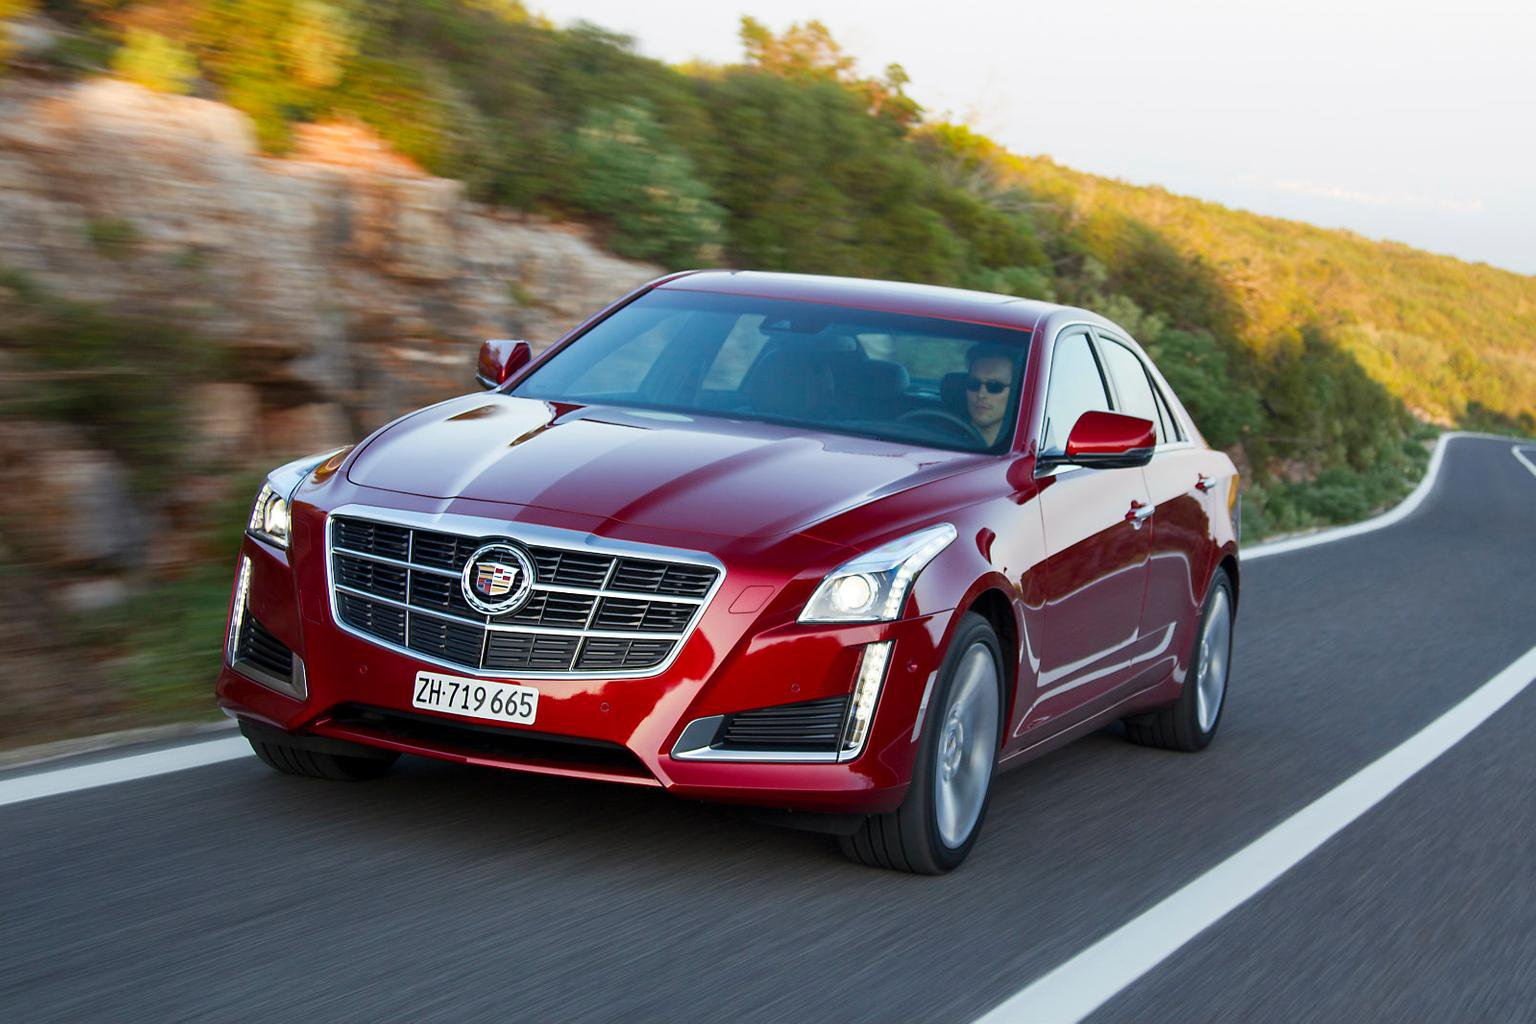 2014 cadillac cts review | what car?